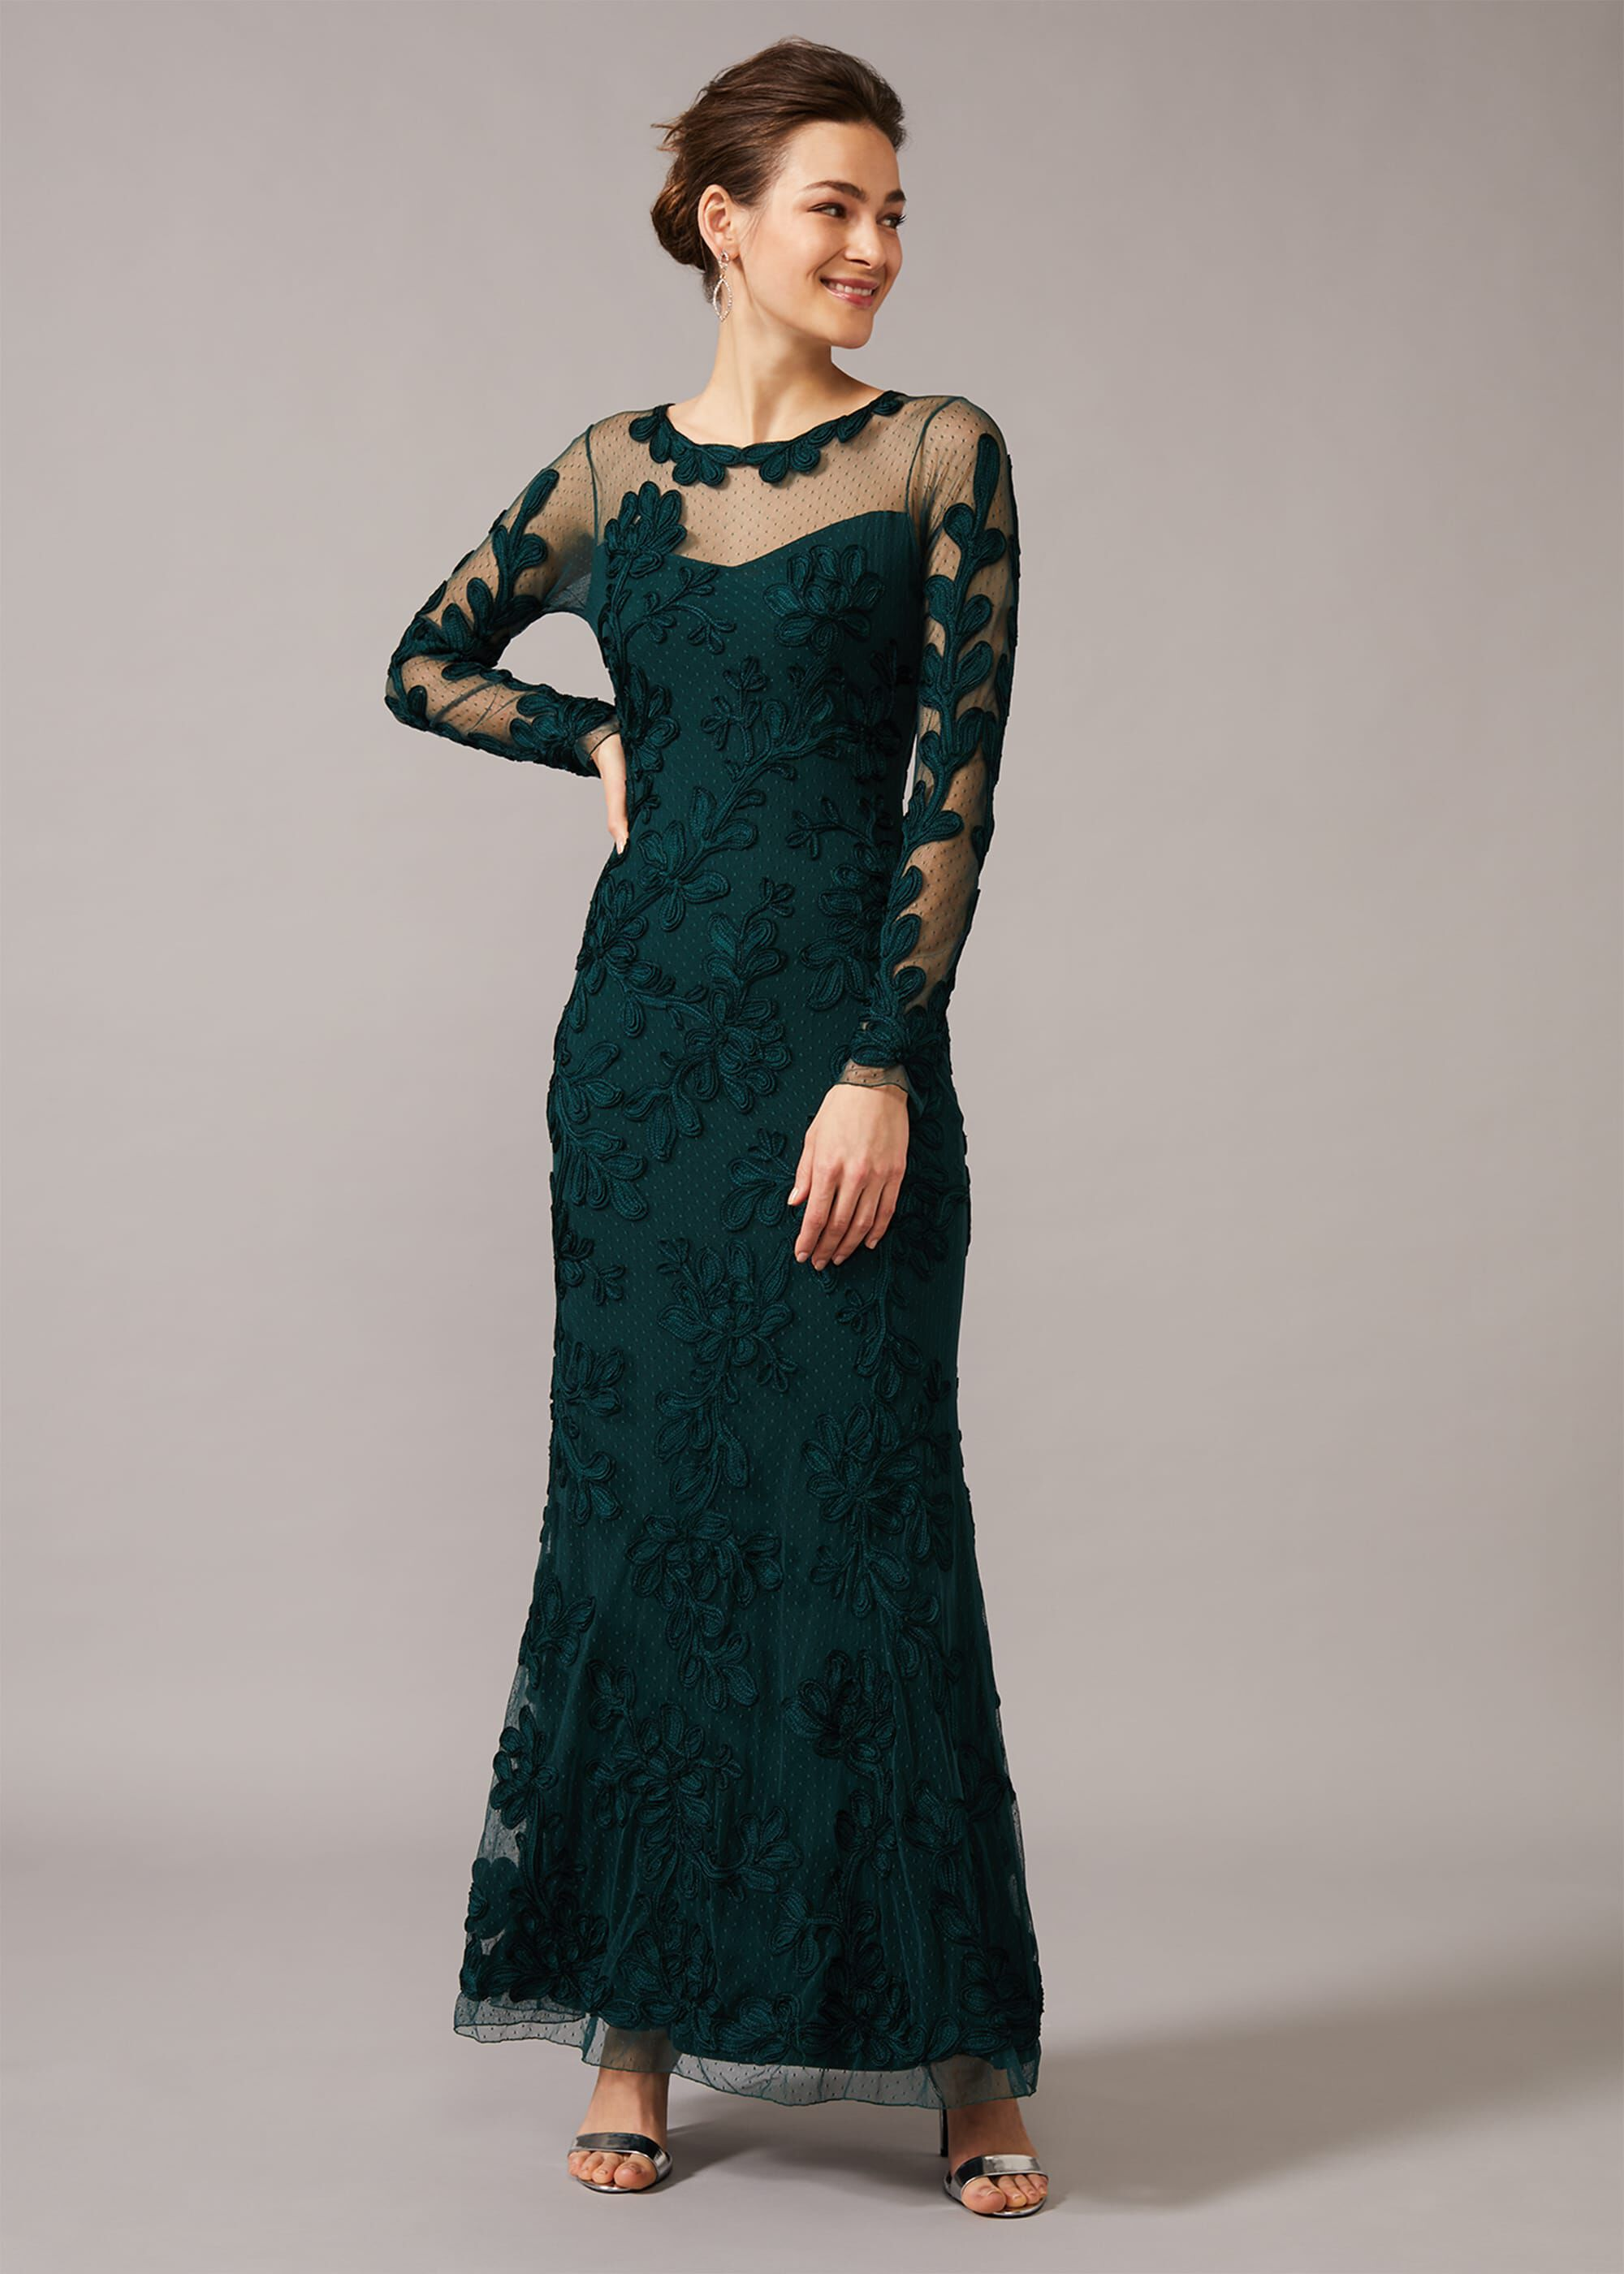 Phase Eight Lorie Tapework Lace Dress, Green, Maxi, Occasion Dress